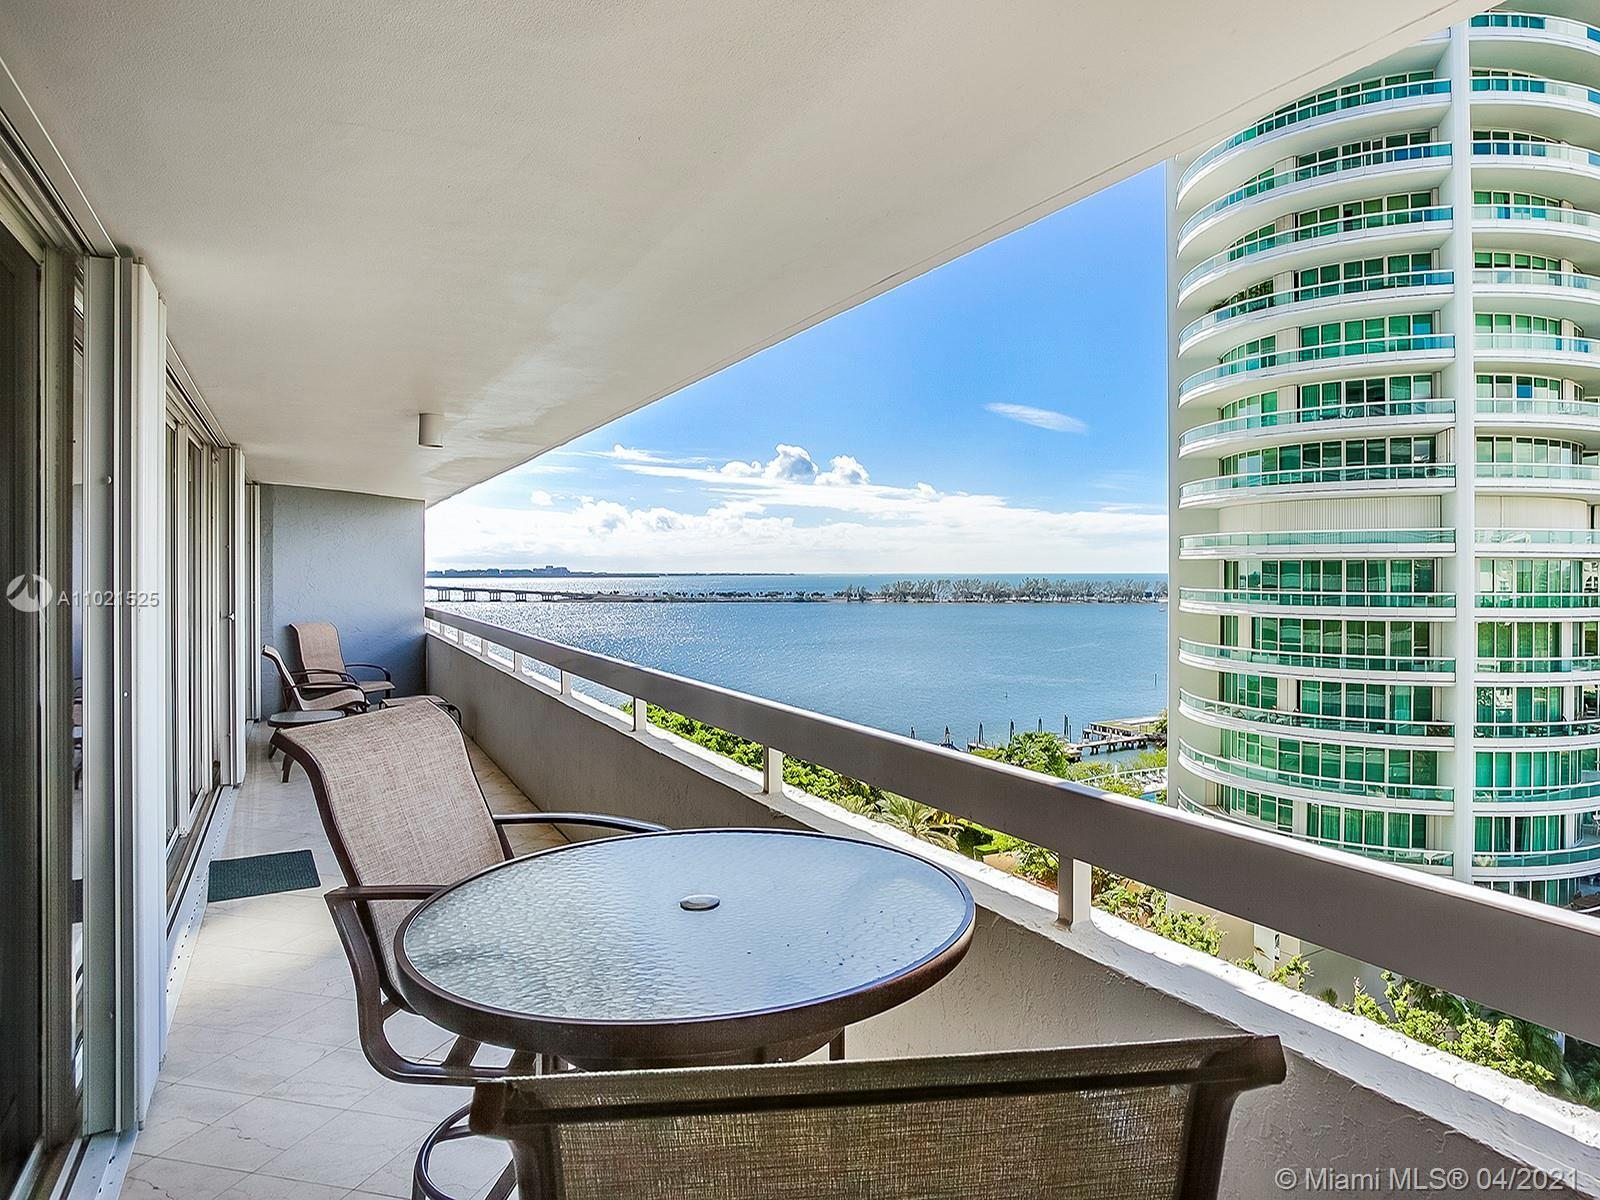 Delight in the amazing views of Biscayne Bay, from the over-sized balcony of this spacious 2 bedroom